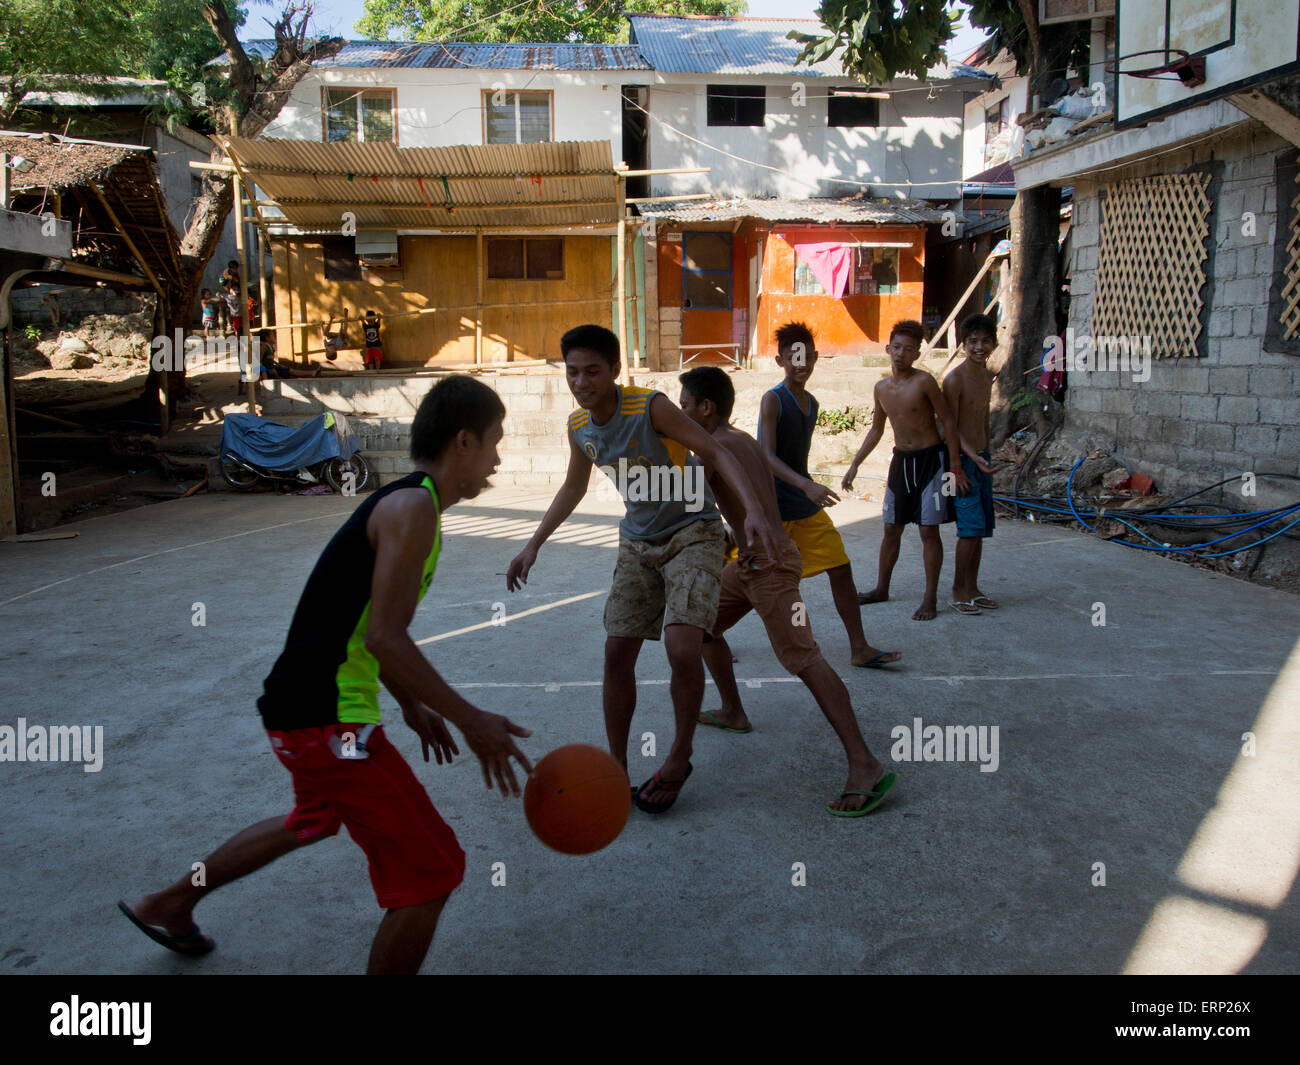 Youth playing basketball in a slum in Ilo Ilo, Philippines - Stock Image